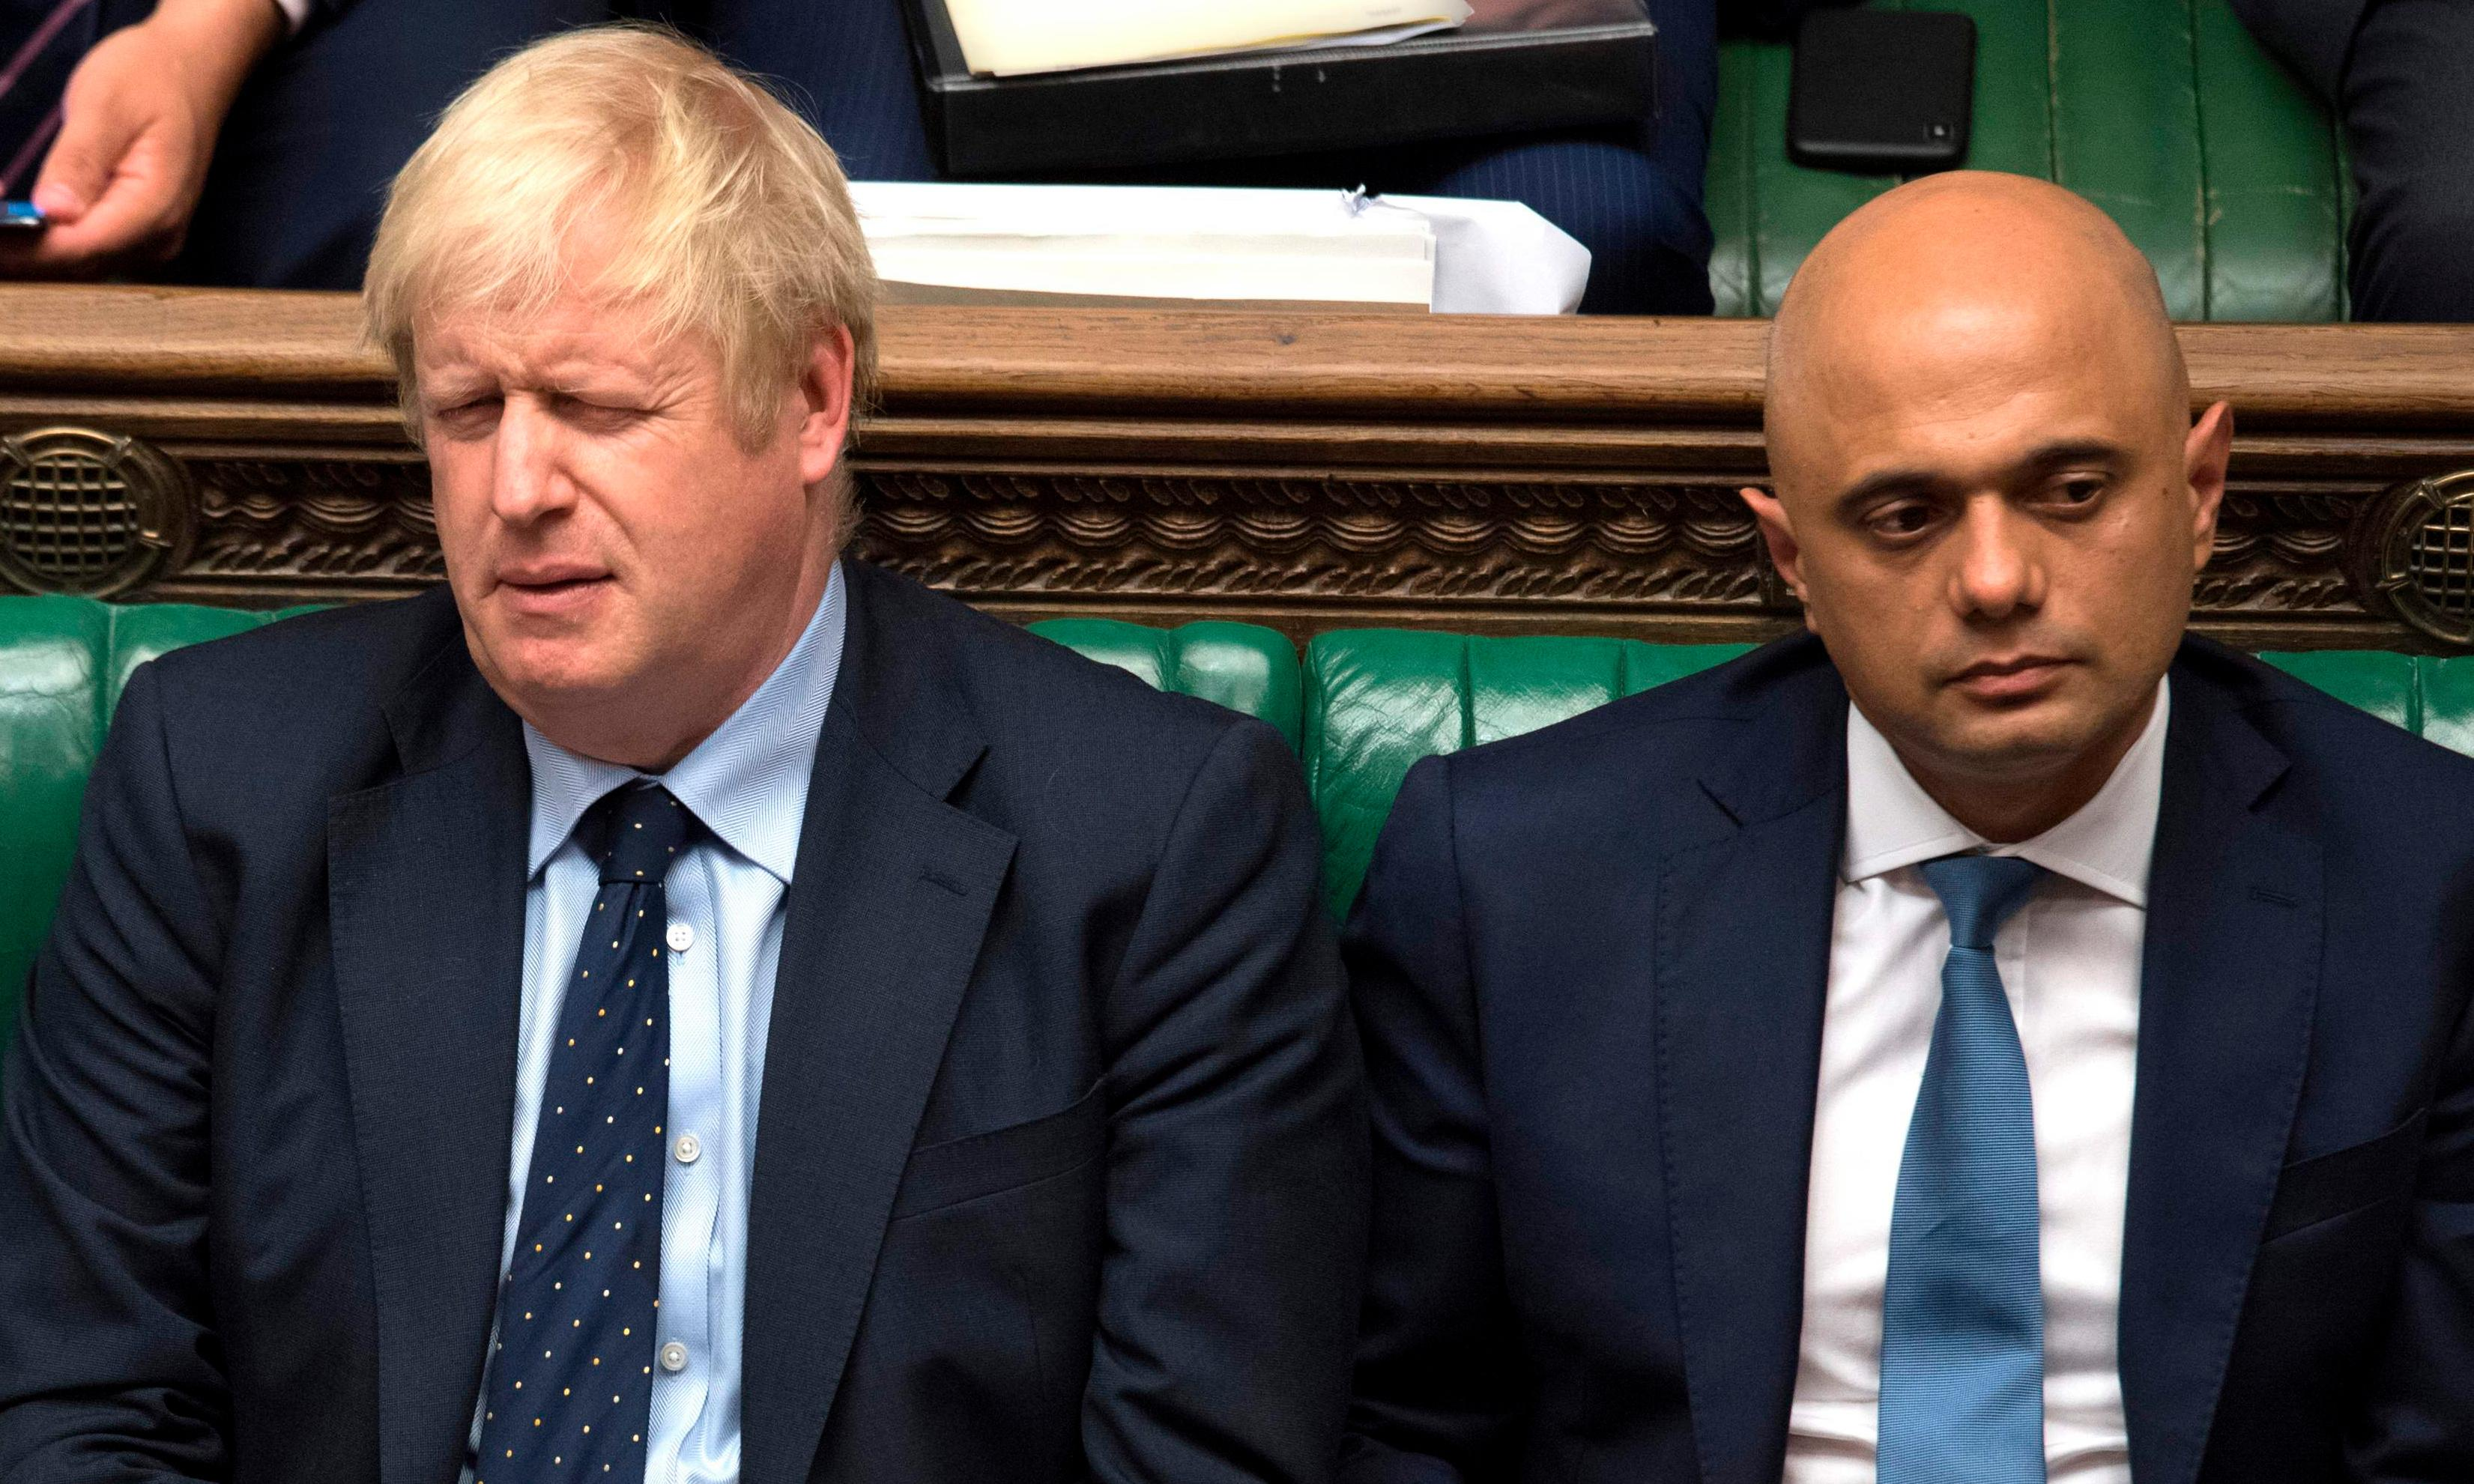 'It has got worse': Boris Johnson 'hamstrung' by rift with Sajid Javid